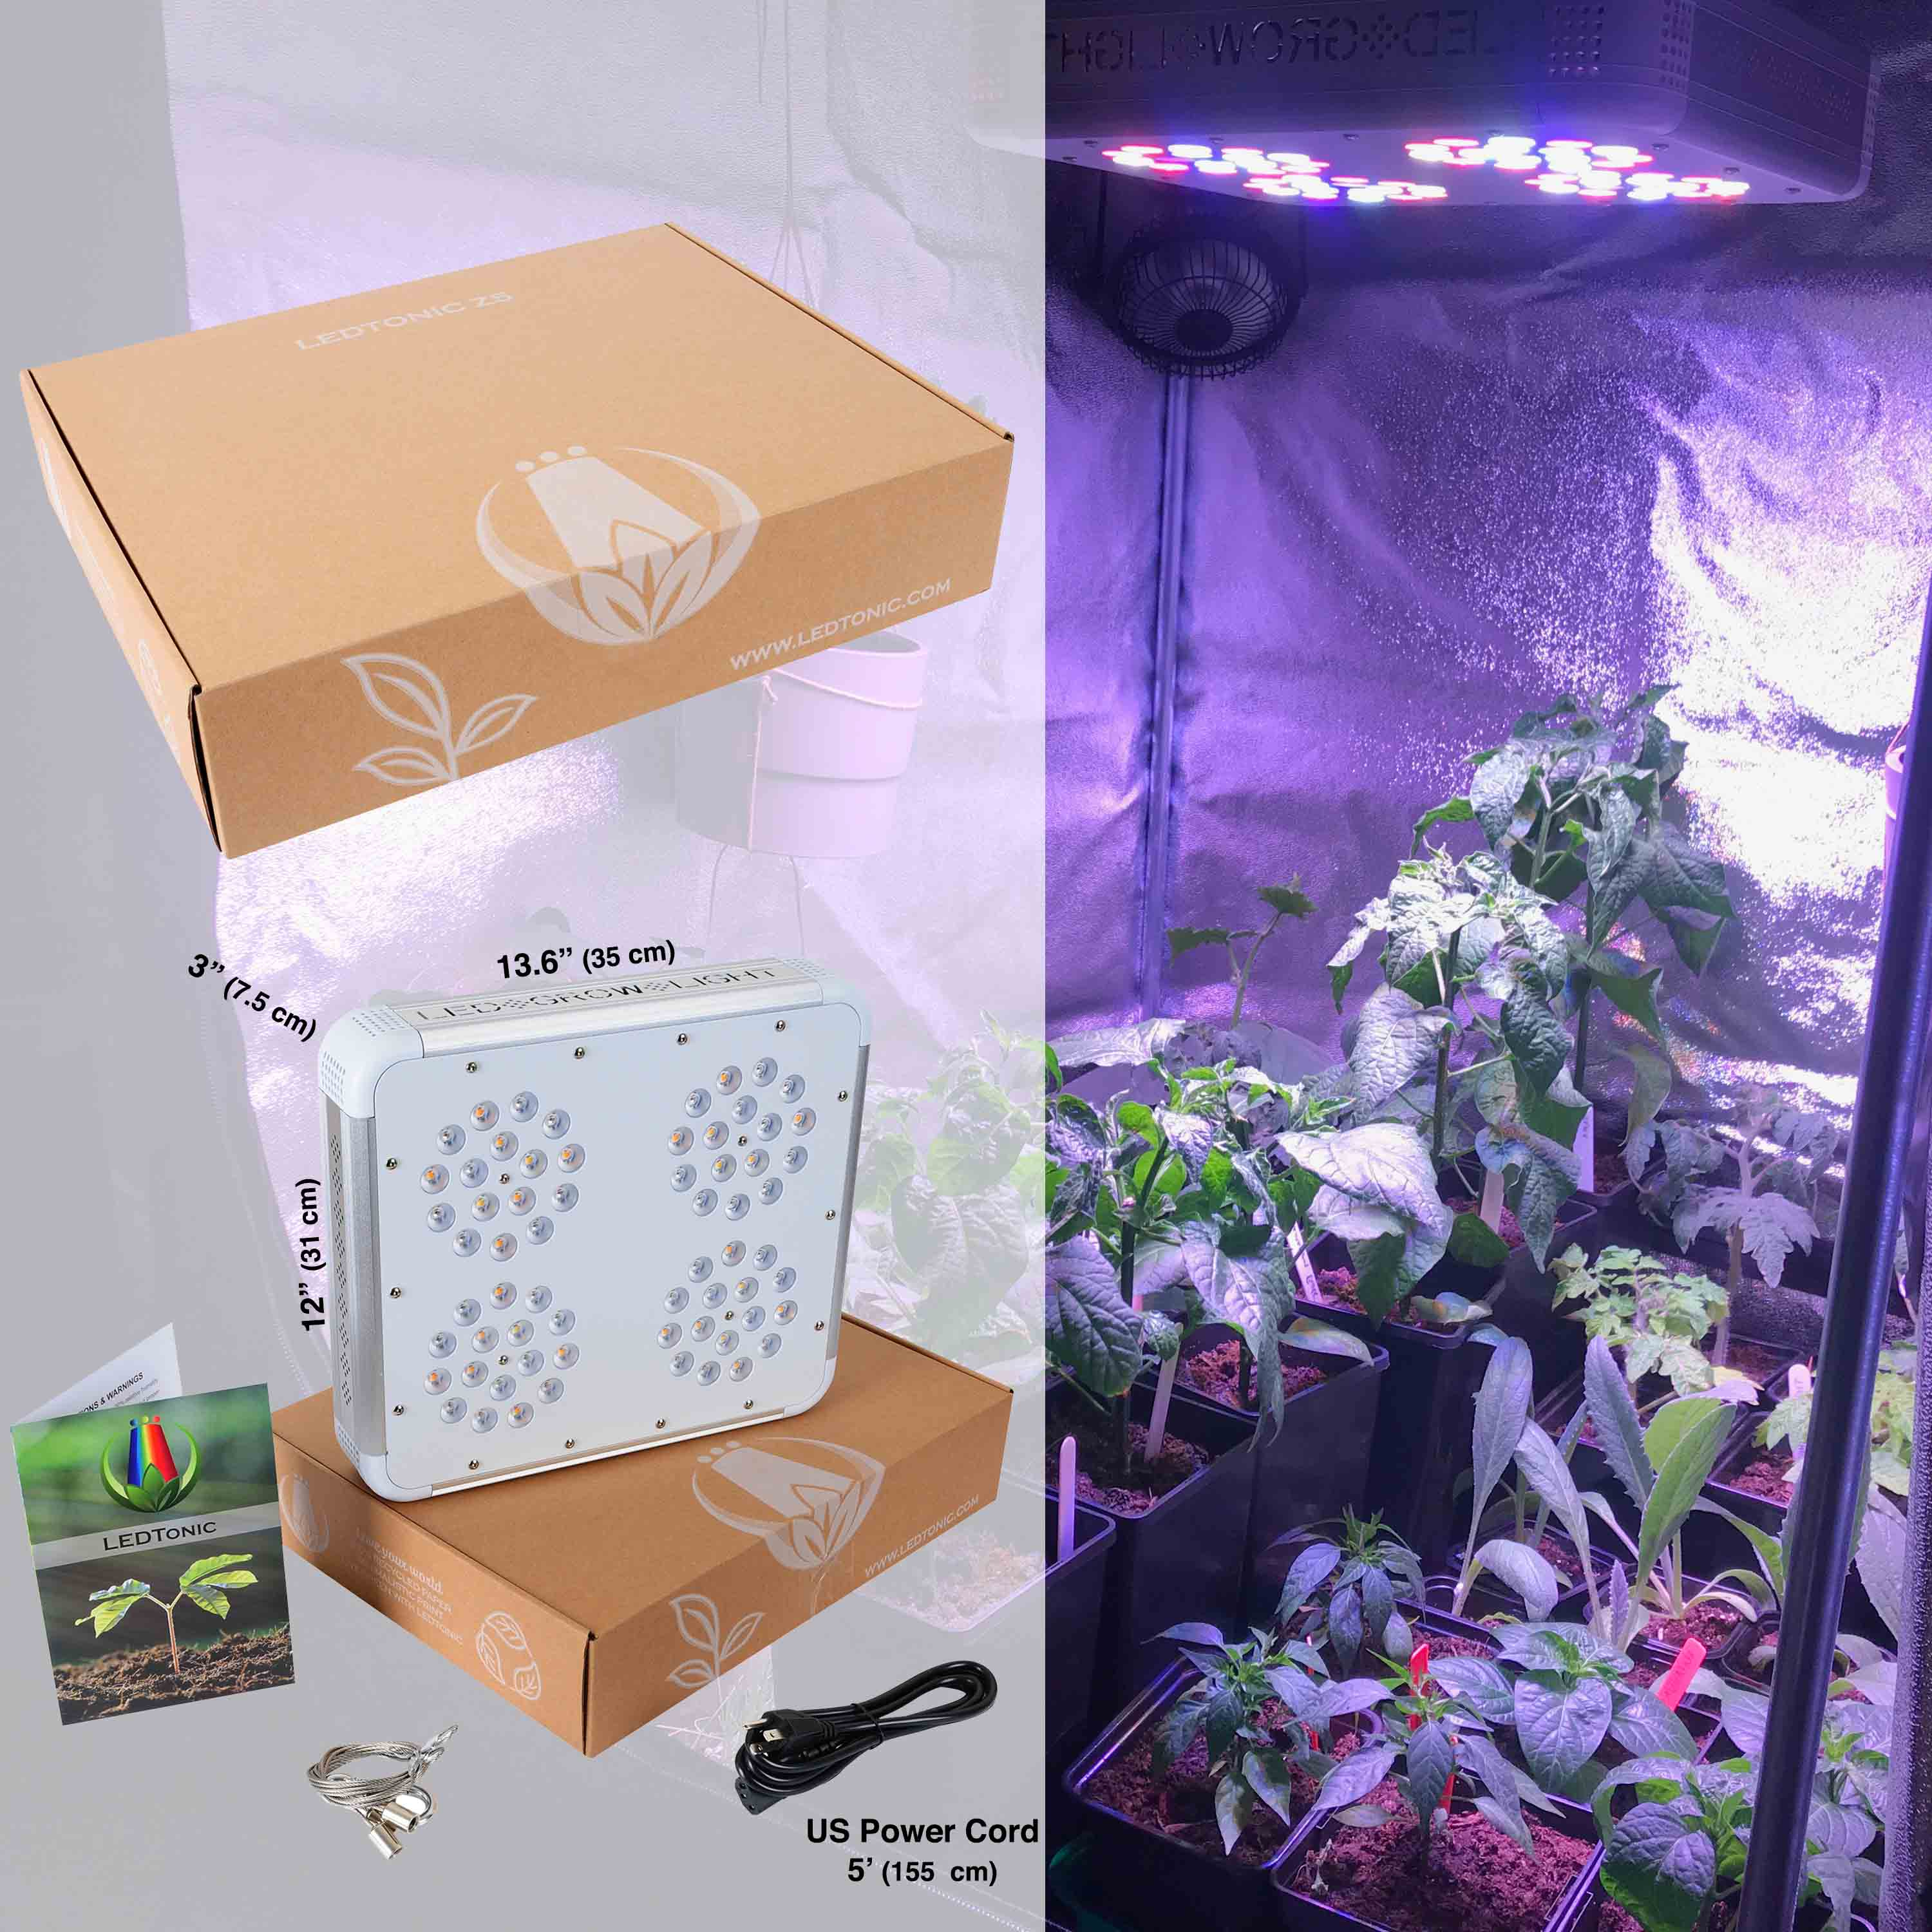 LEDTonic Z5 Indoor Grow Light - size and box content